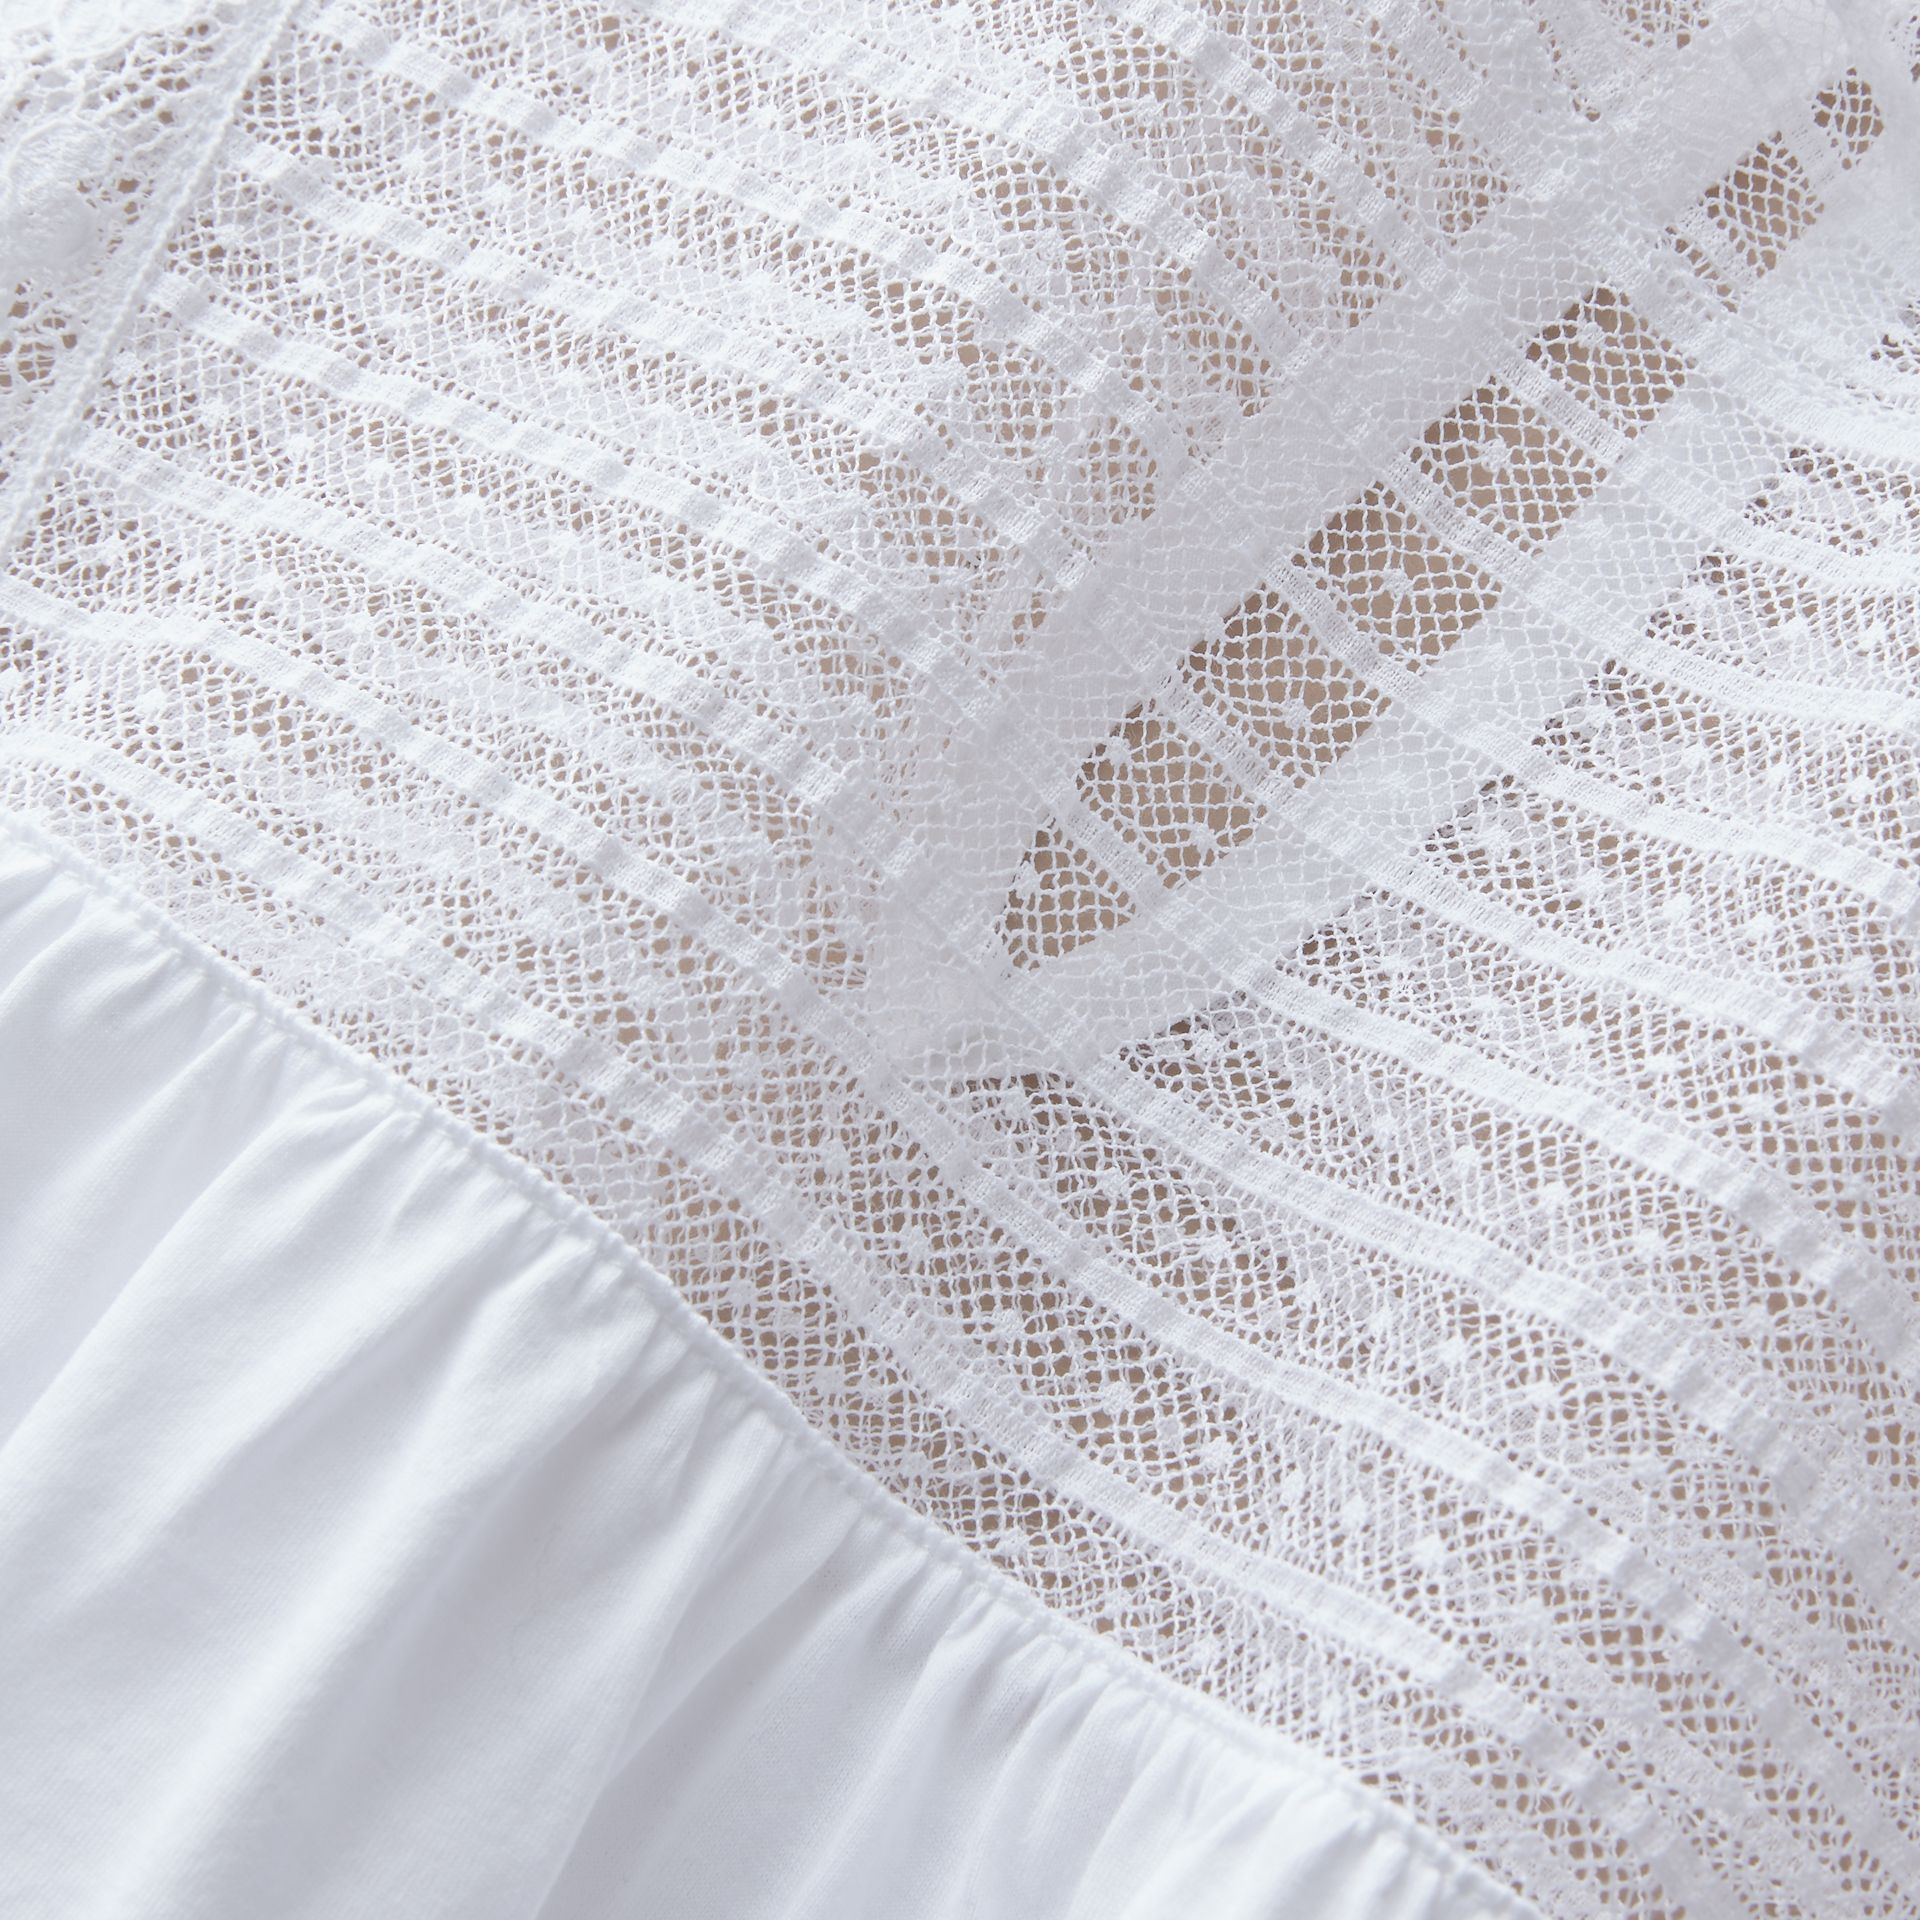 Sleeveless Lace Panel Cotton Top in White - Women | Burberry Canada - gallery image 1